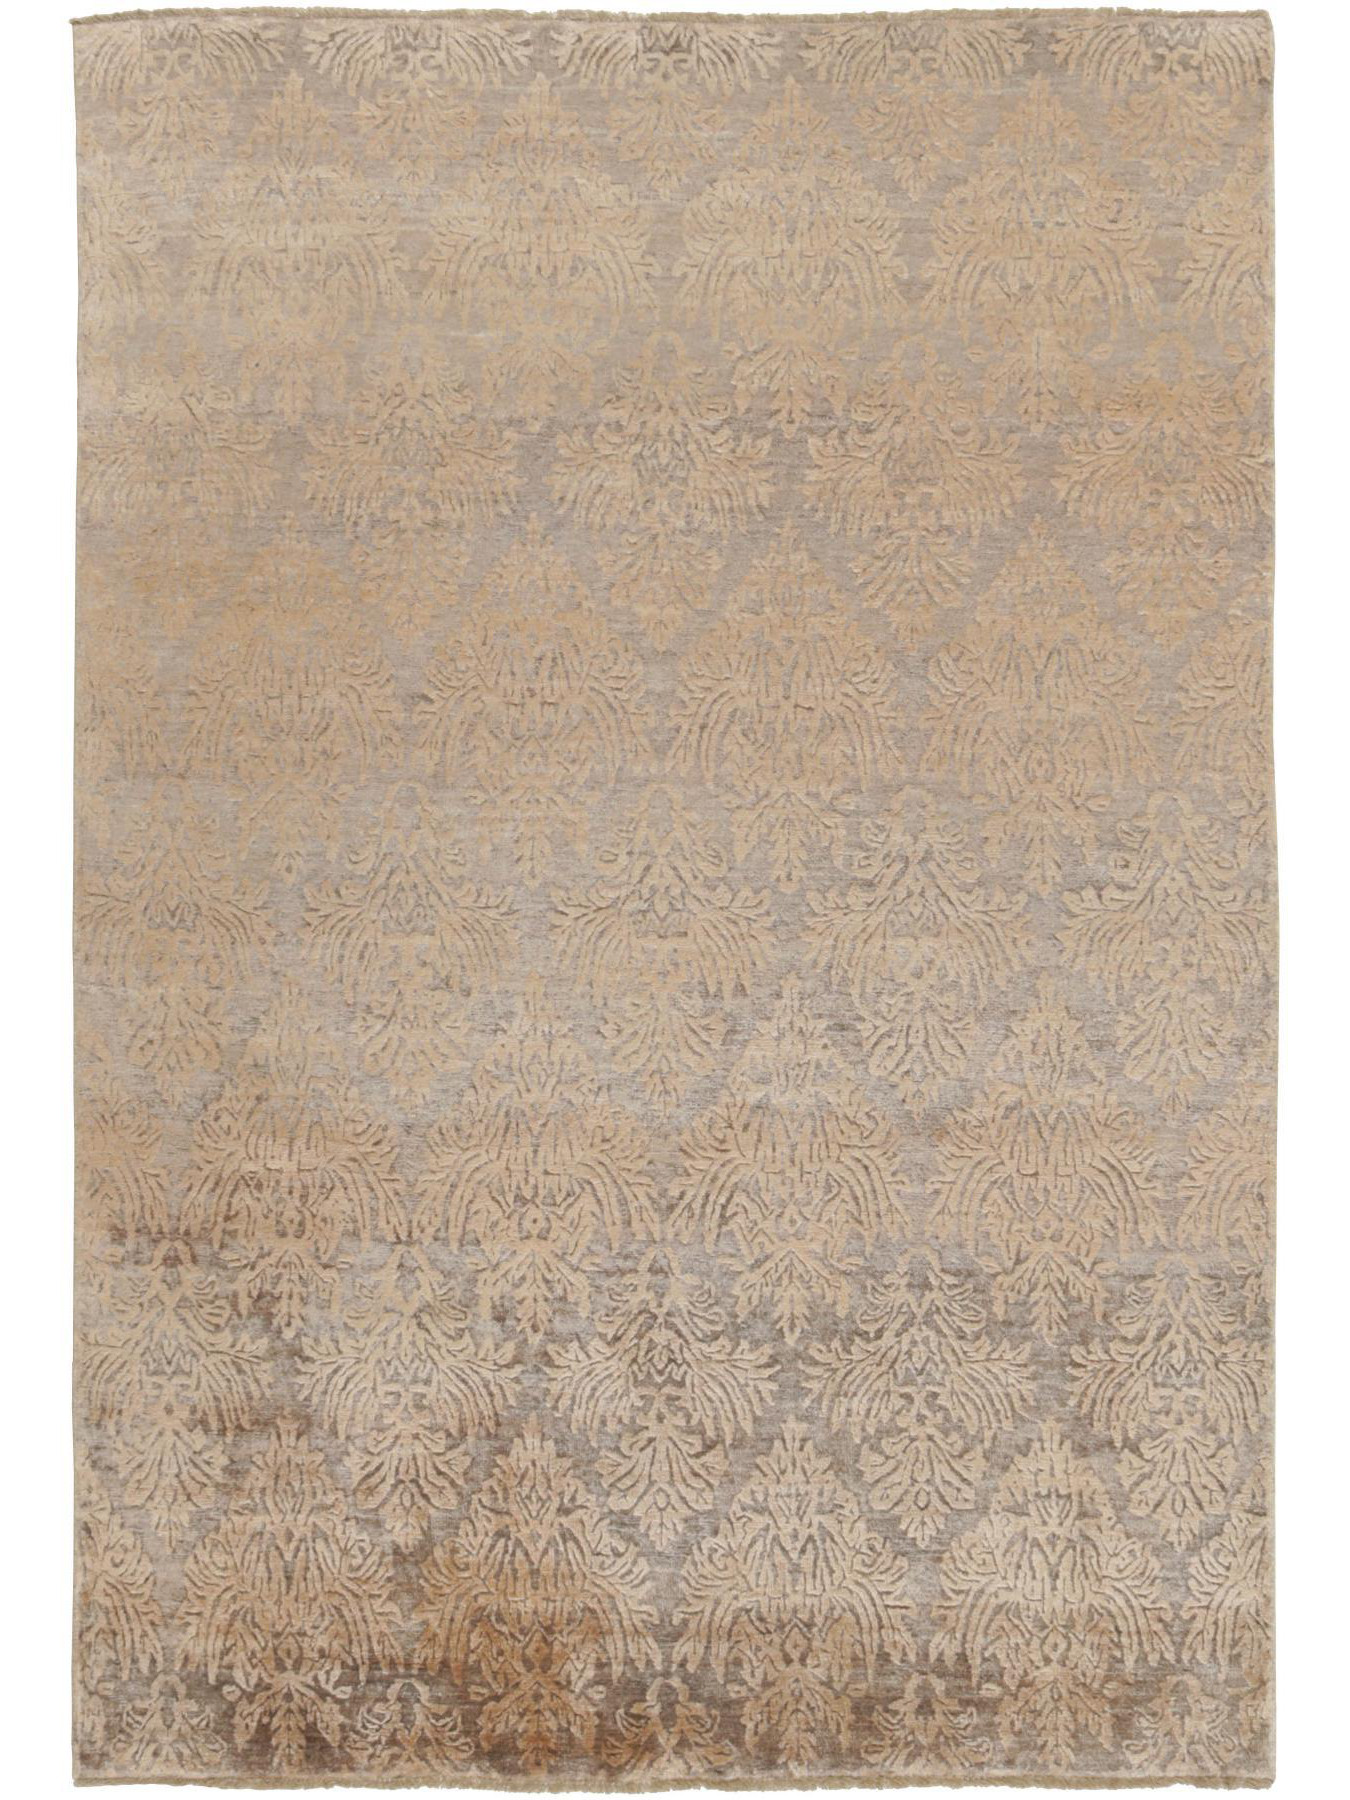 Luxury carpets - Damask-AL-3 B-34/B-2